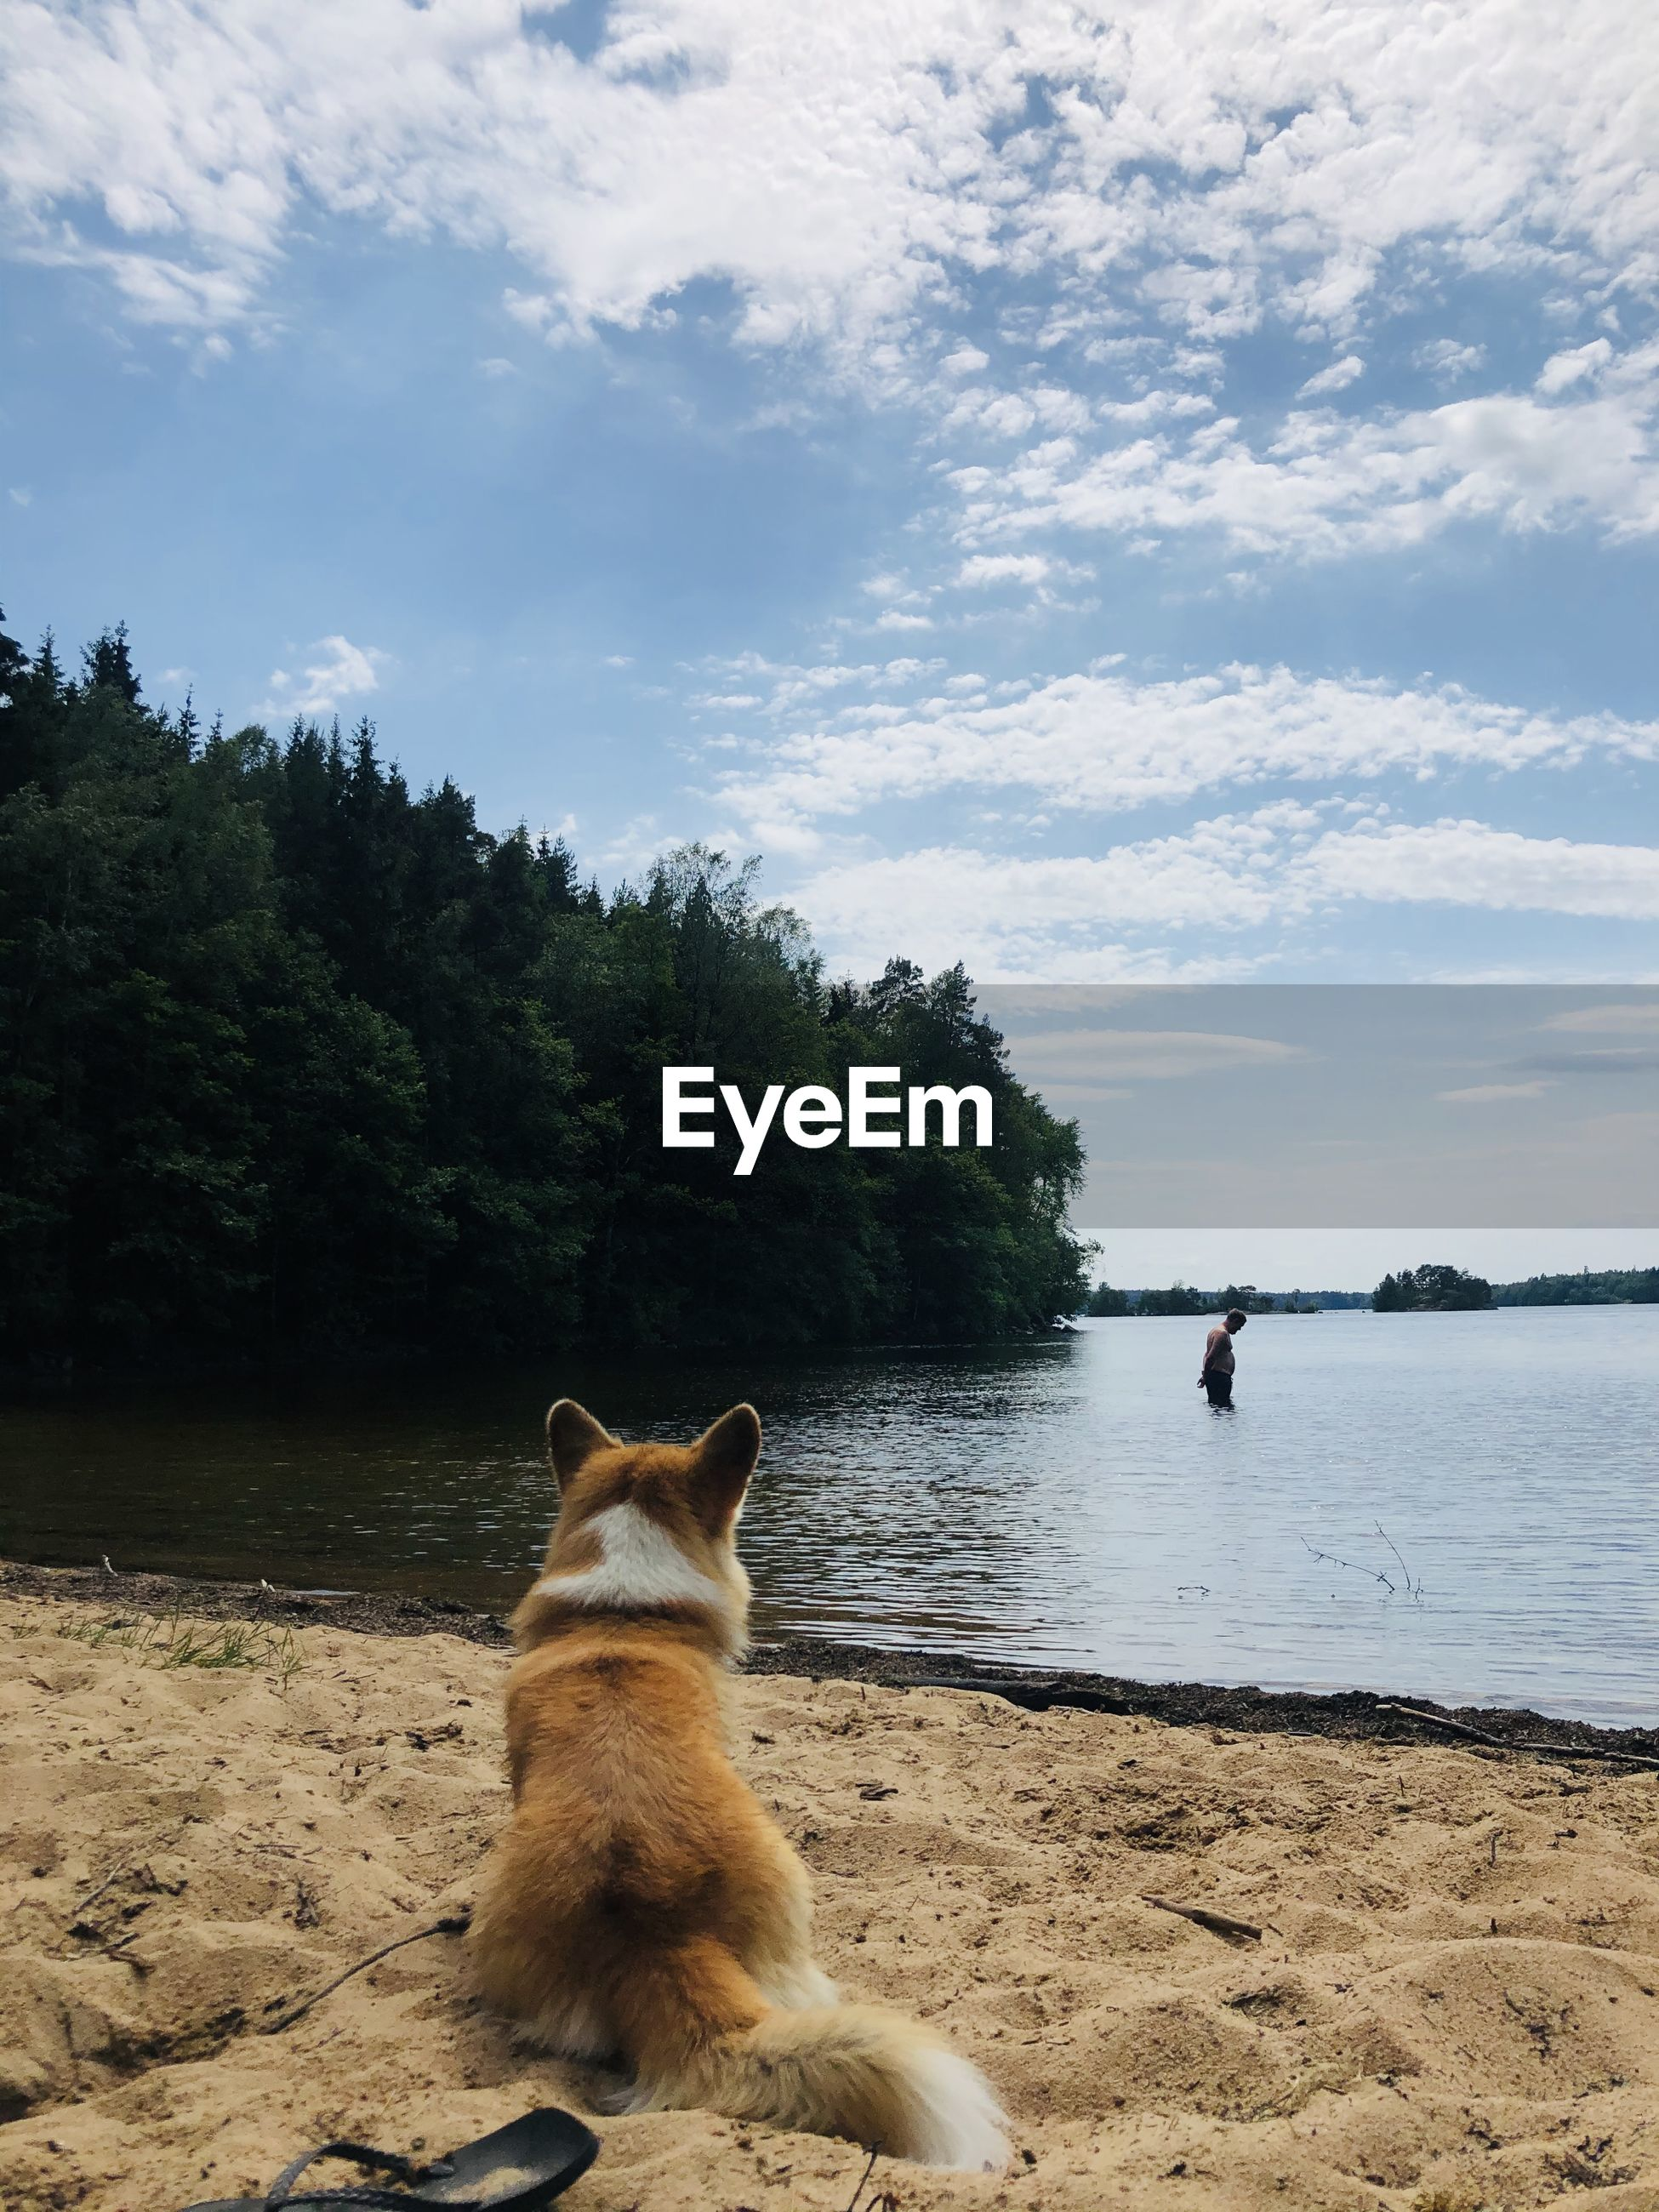 VIEW OF DOG ON SHORE